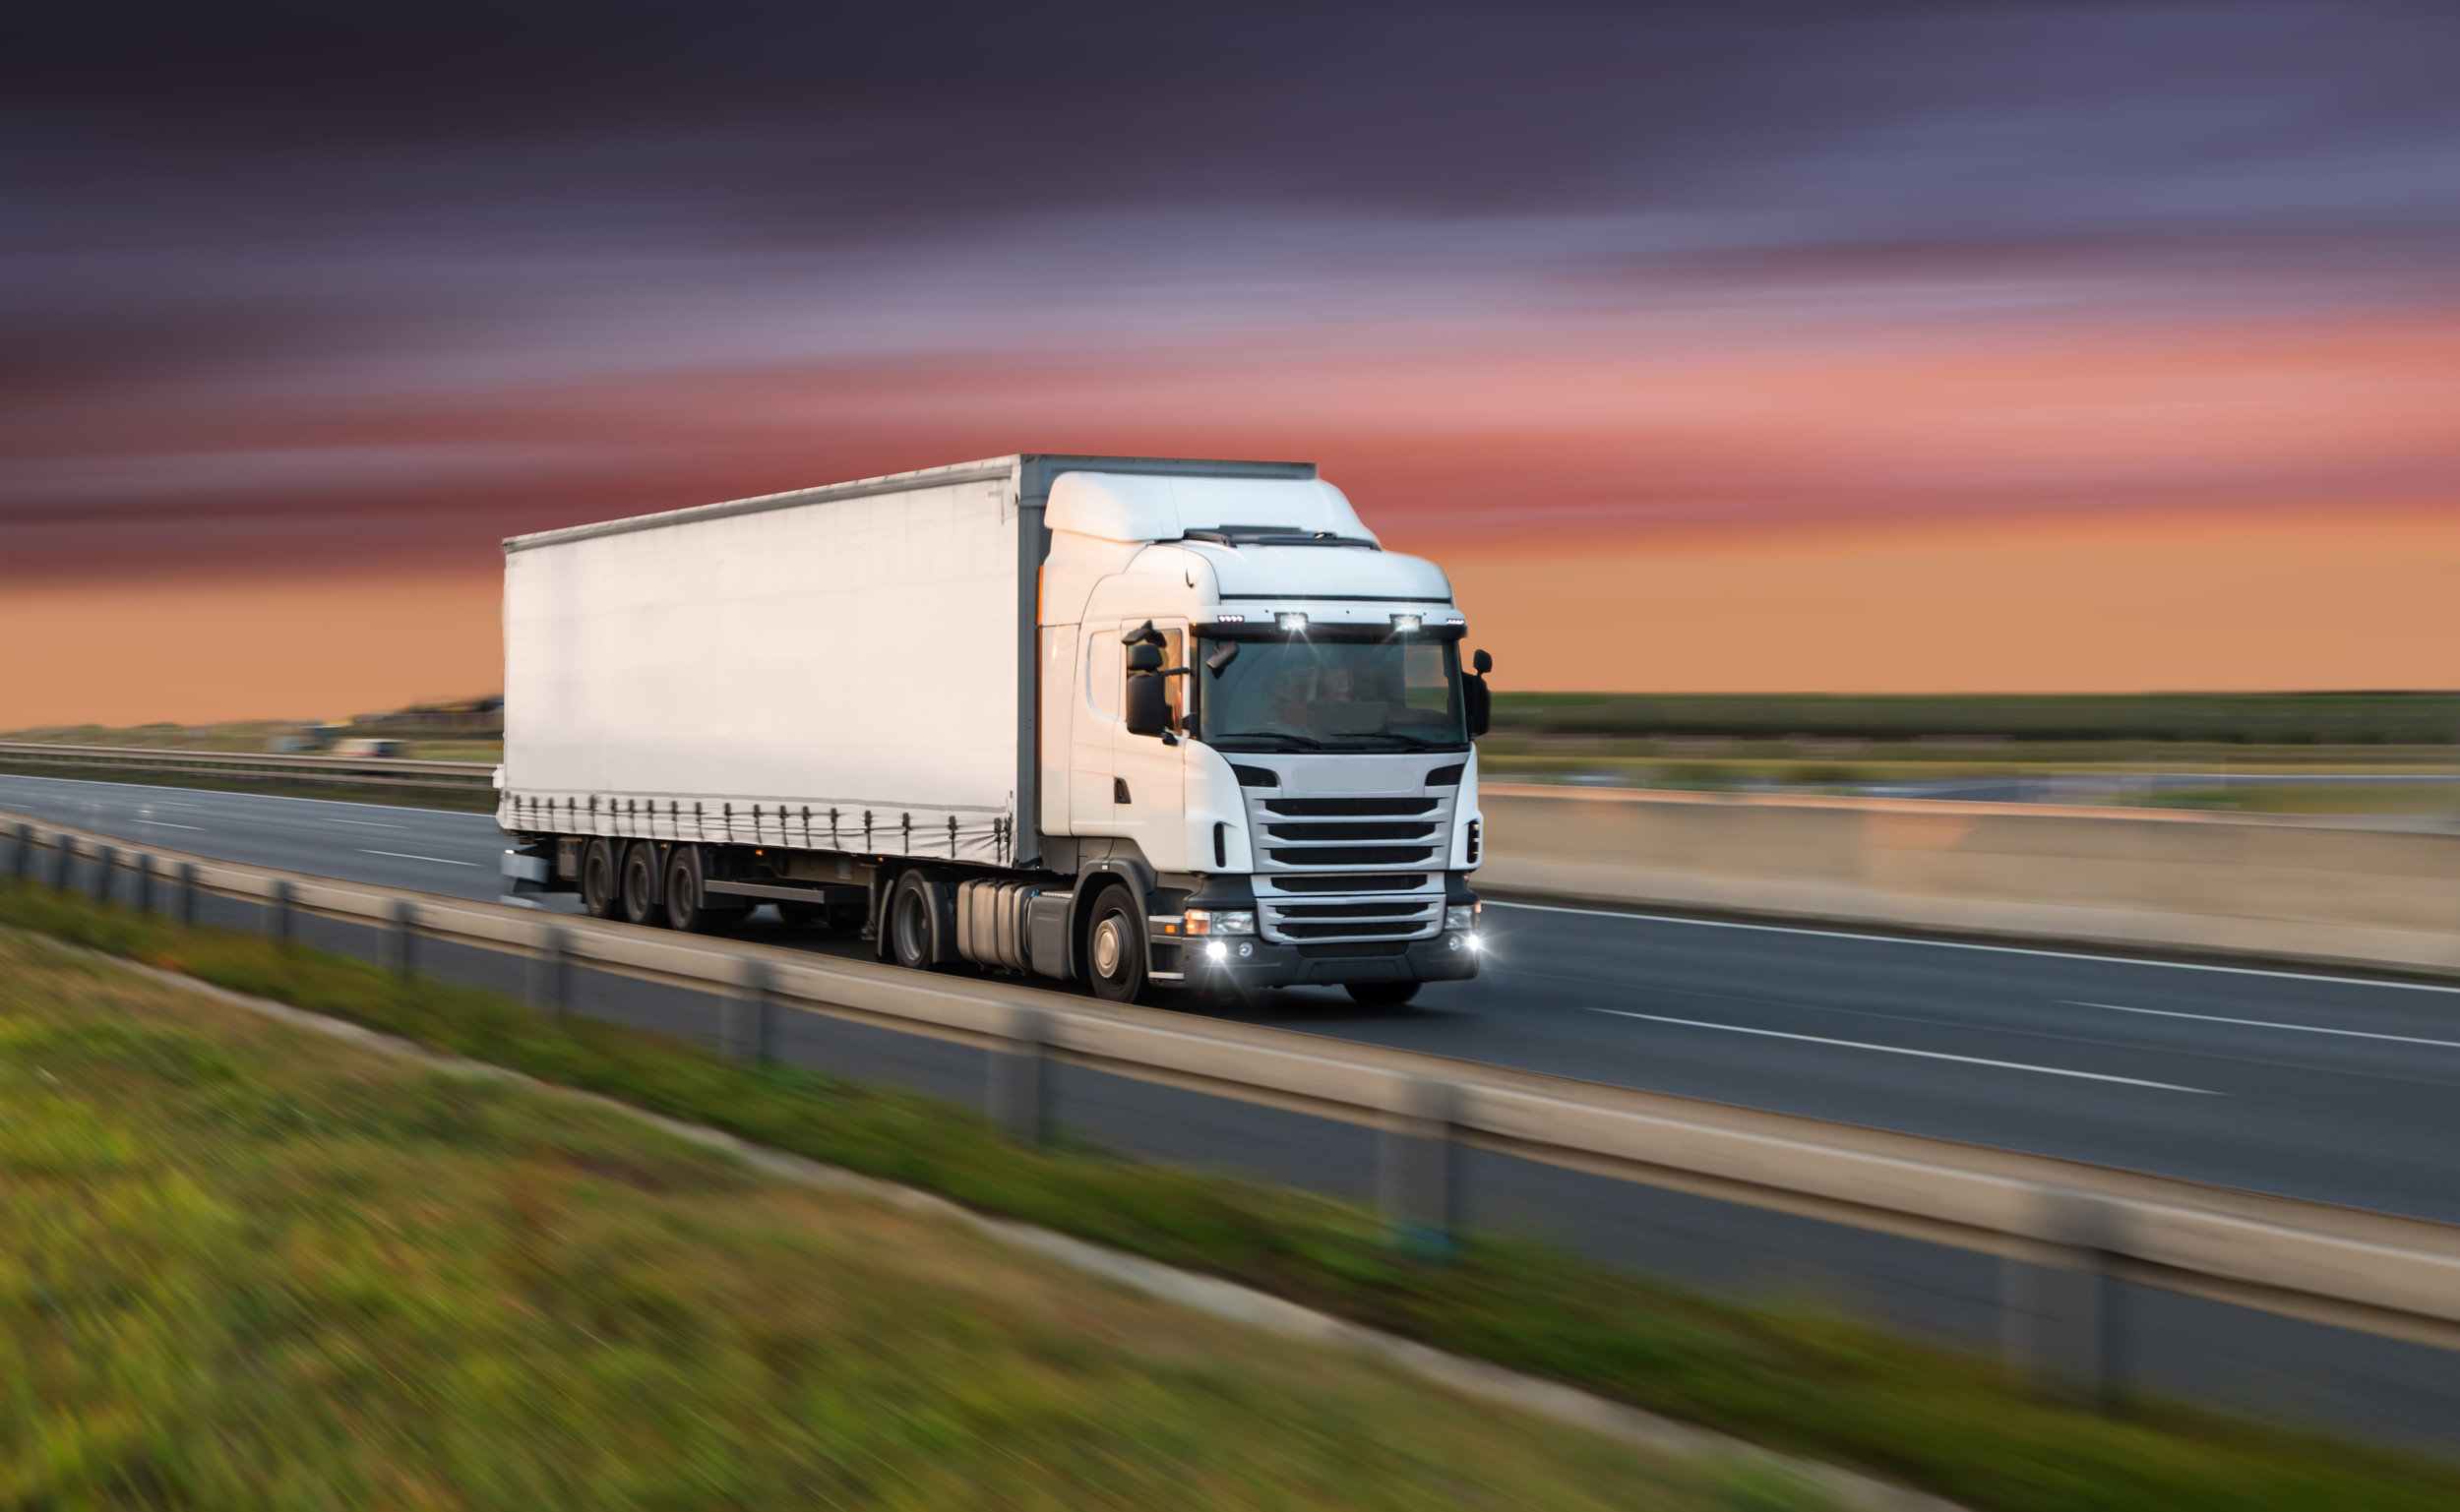 Canva - Truck with container on road, cargo transportation concept..jpg